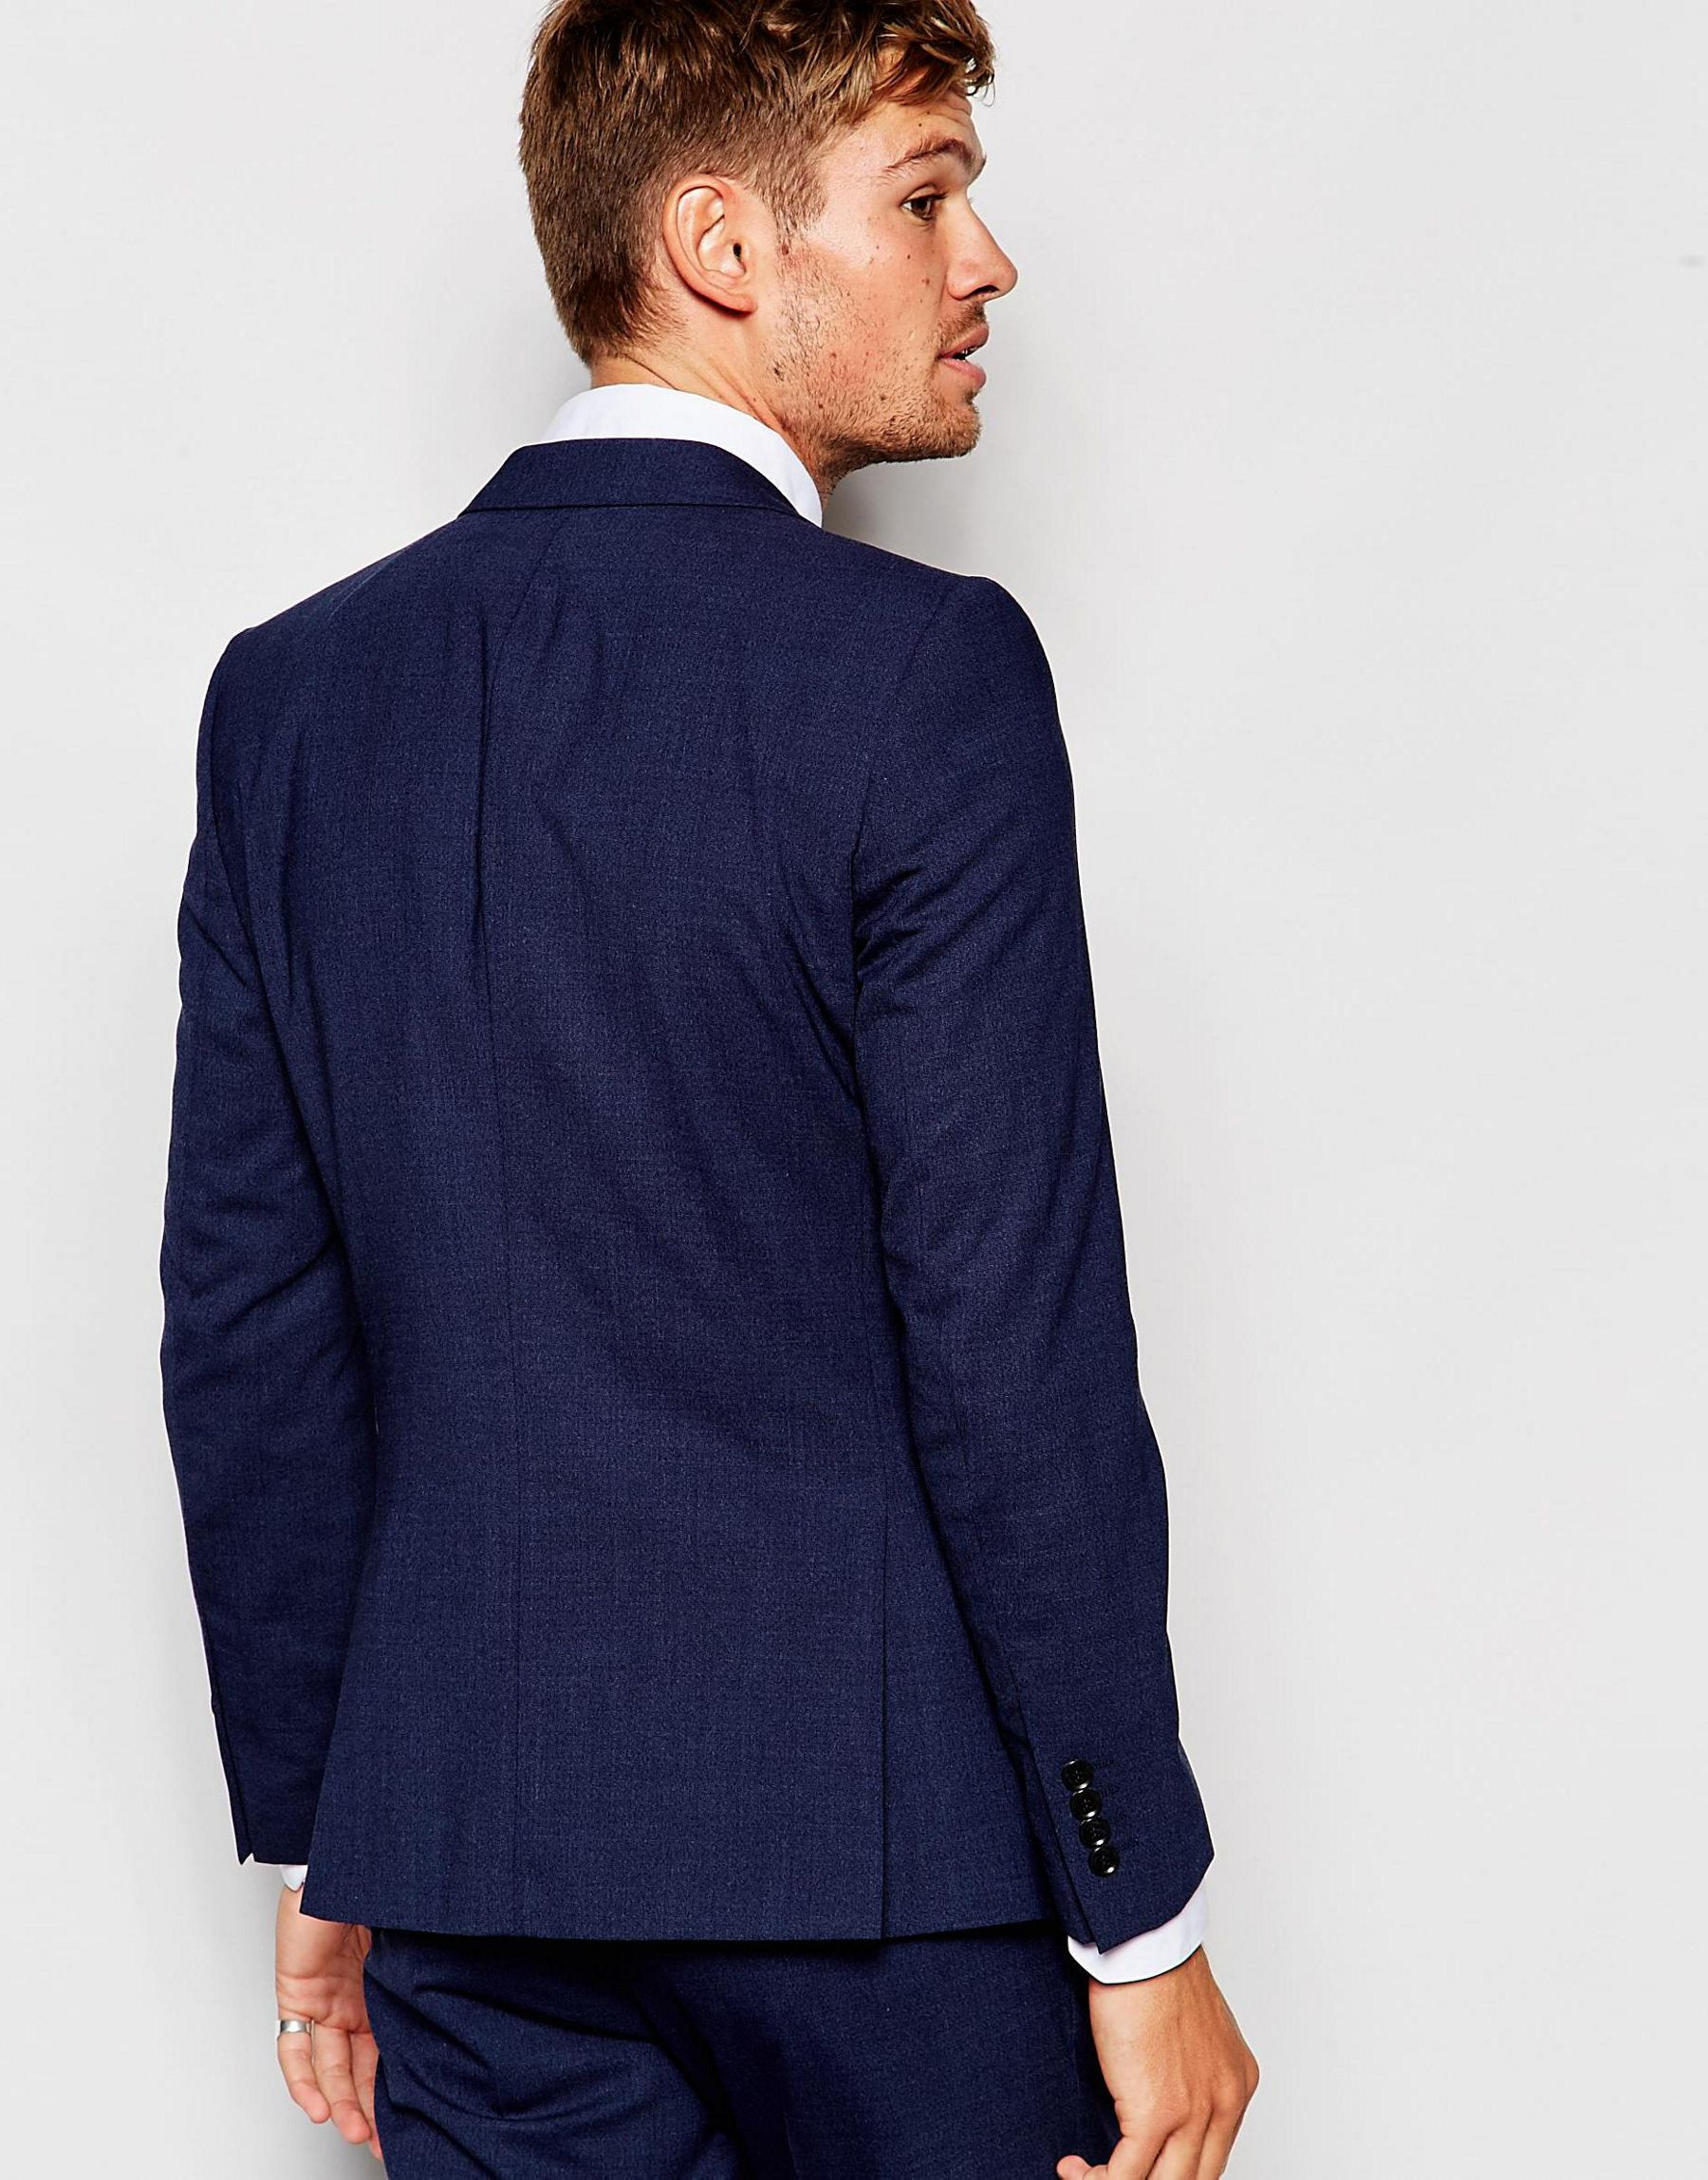 how to pack a suit jacket for travel